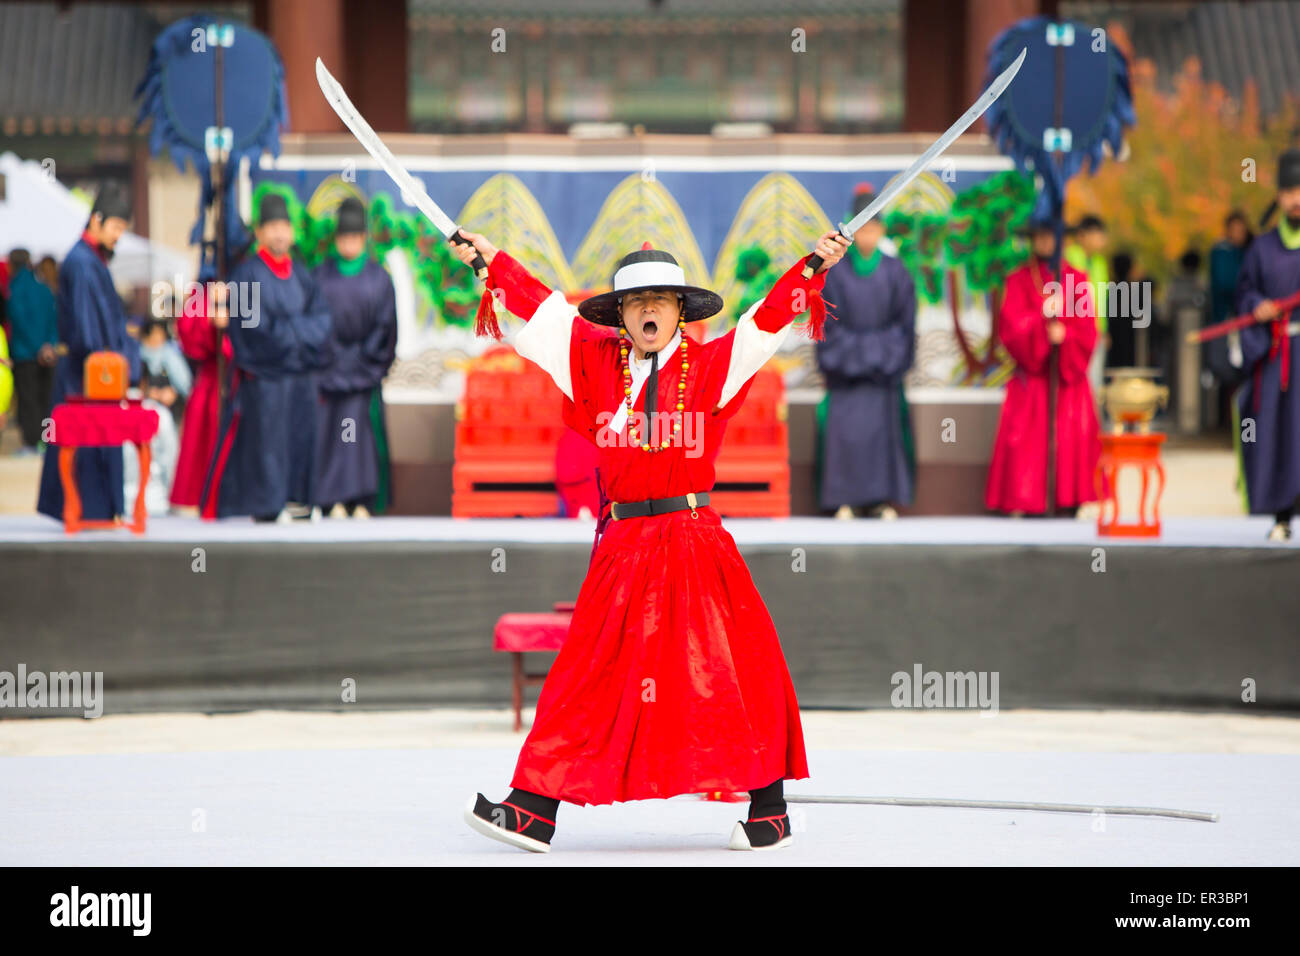 SEOUL, SOUTH KOREA - October 25, 2014 : The changing of the guard demonstration at Gyeongbokgung Palace on October - Stock Image